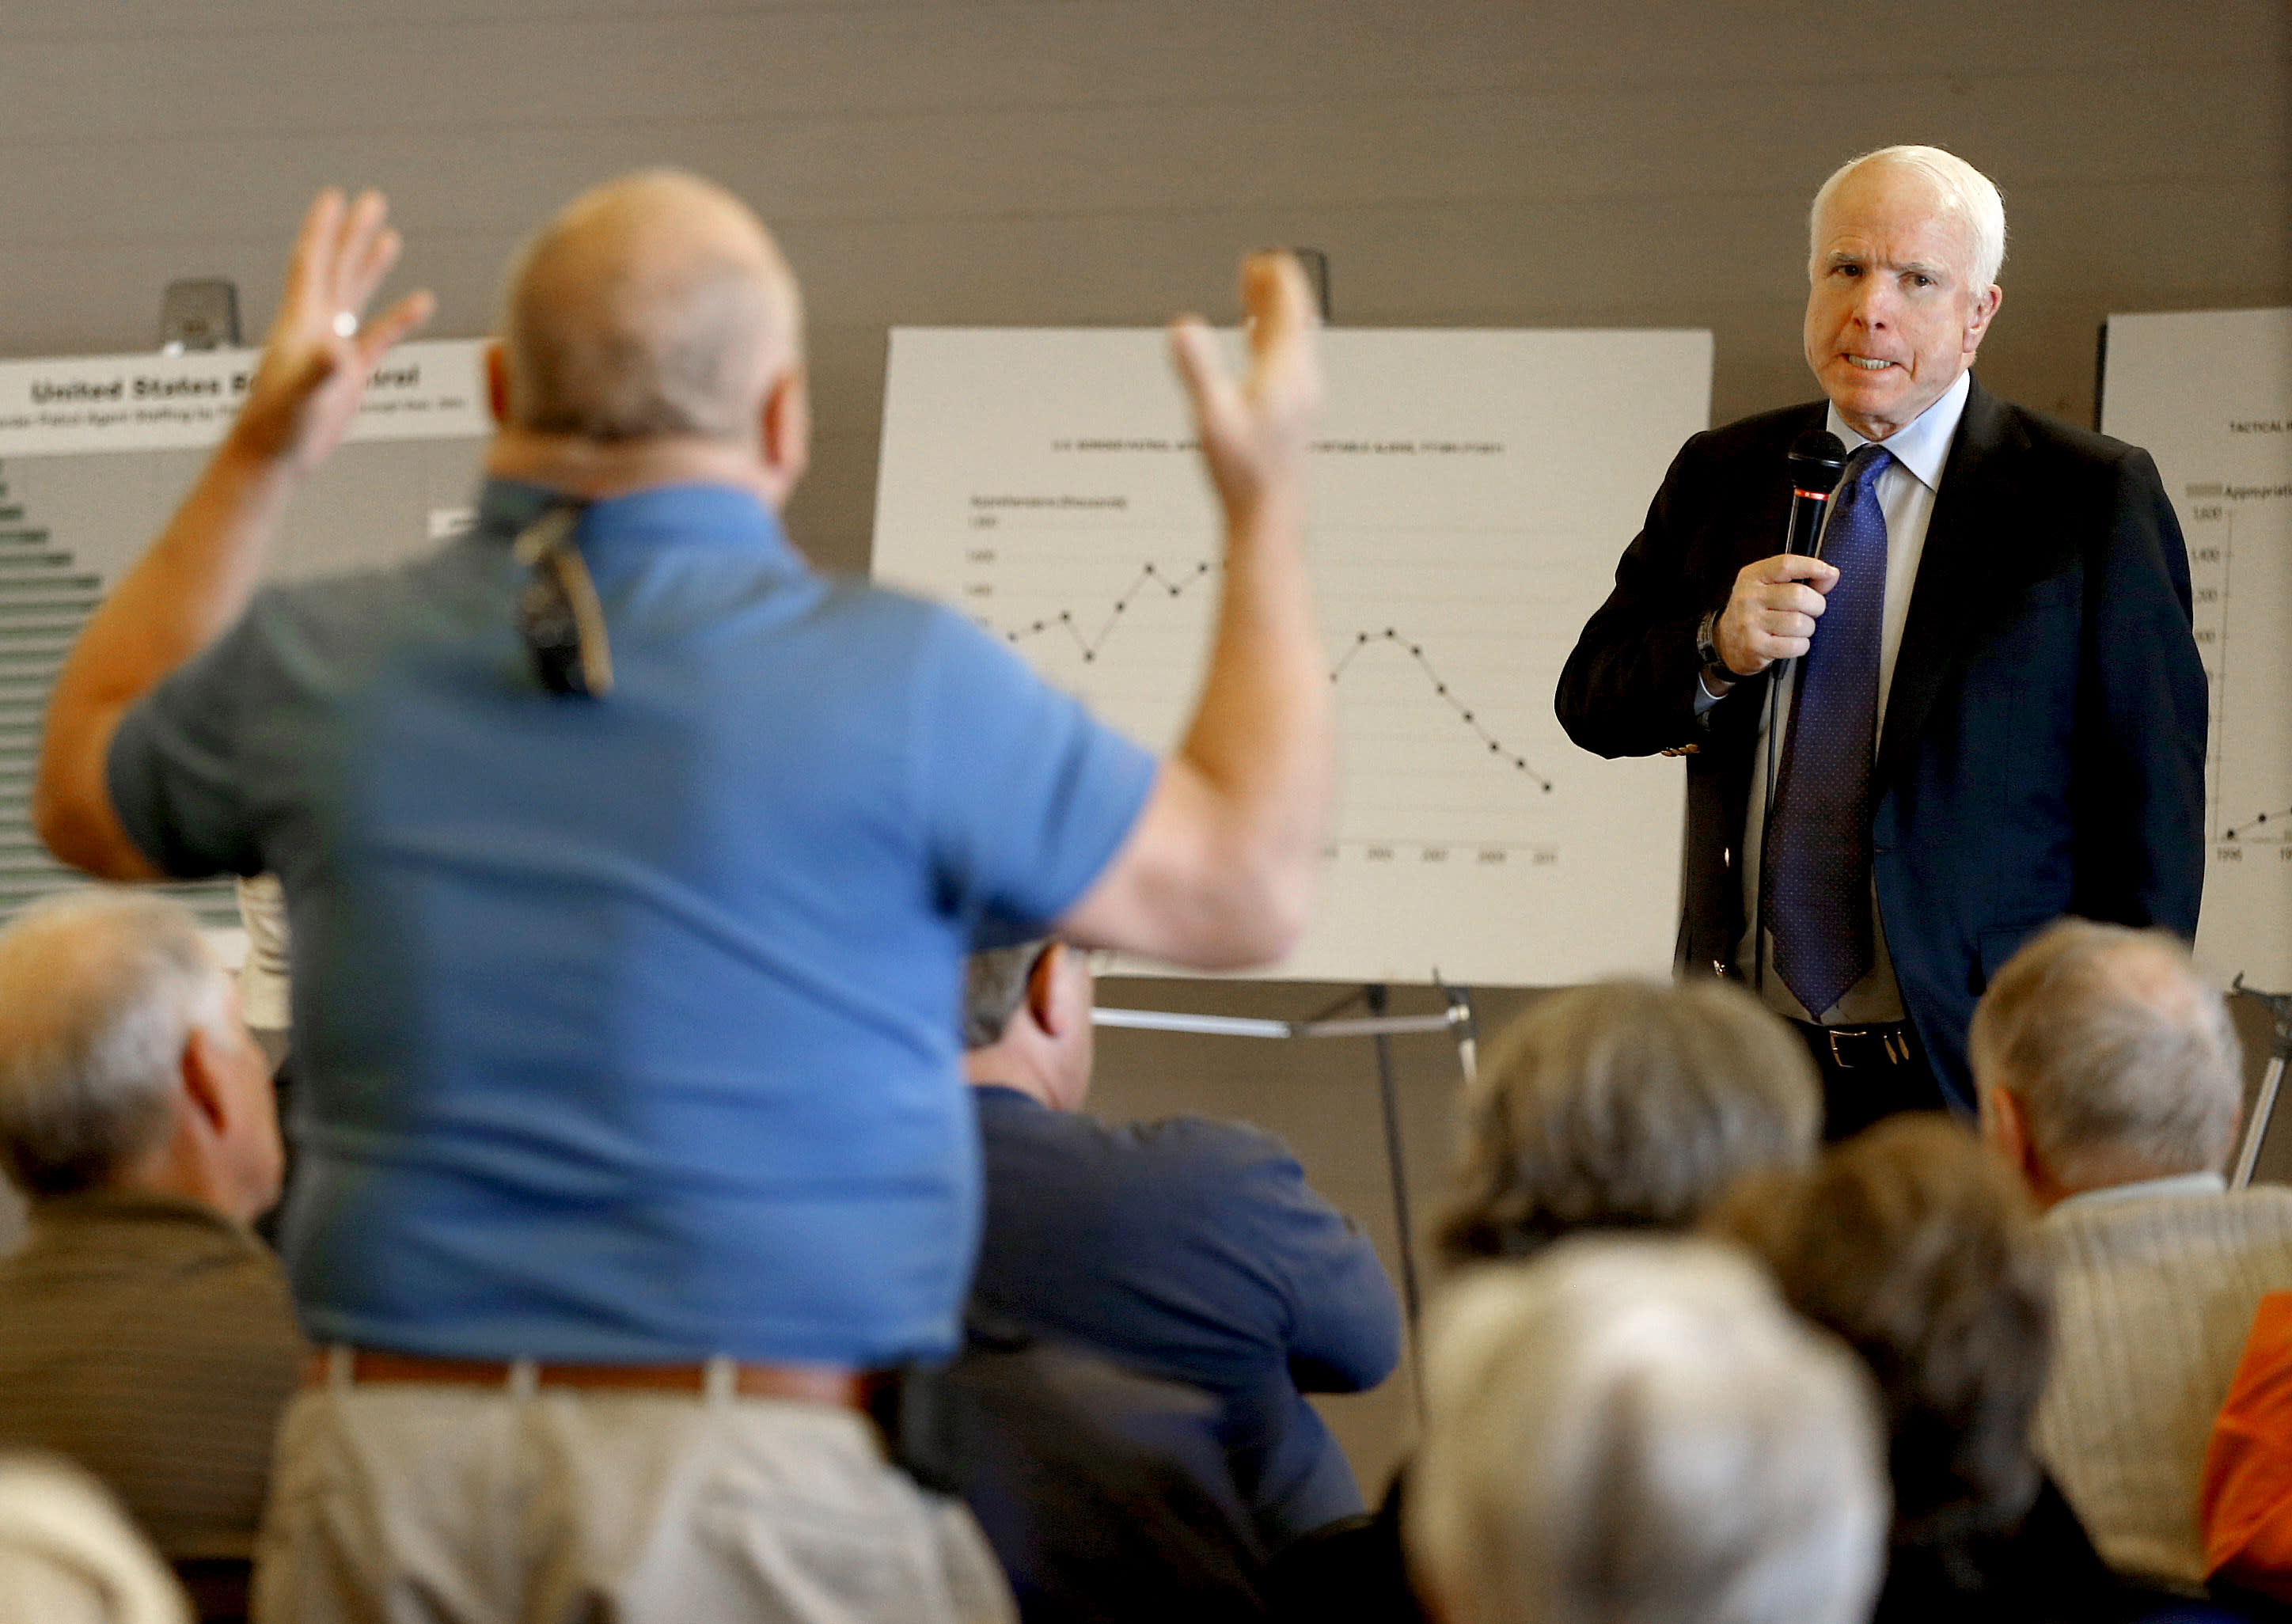 U.S. Sen. John McCain, R-Ariz., listens to a question during a town hall, Tuesday, Feb. 19, 2013, in Sun Lakes, Ariz. McCain defended his proposed immigration overhaul to an angry crowd in suburban Arizona in the latest sign that this border state will play a prominent role in the national immigration reform debate. (AP Photo/Matt York)